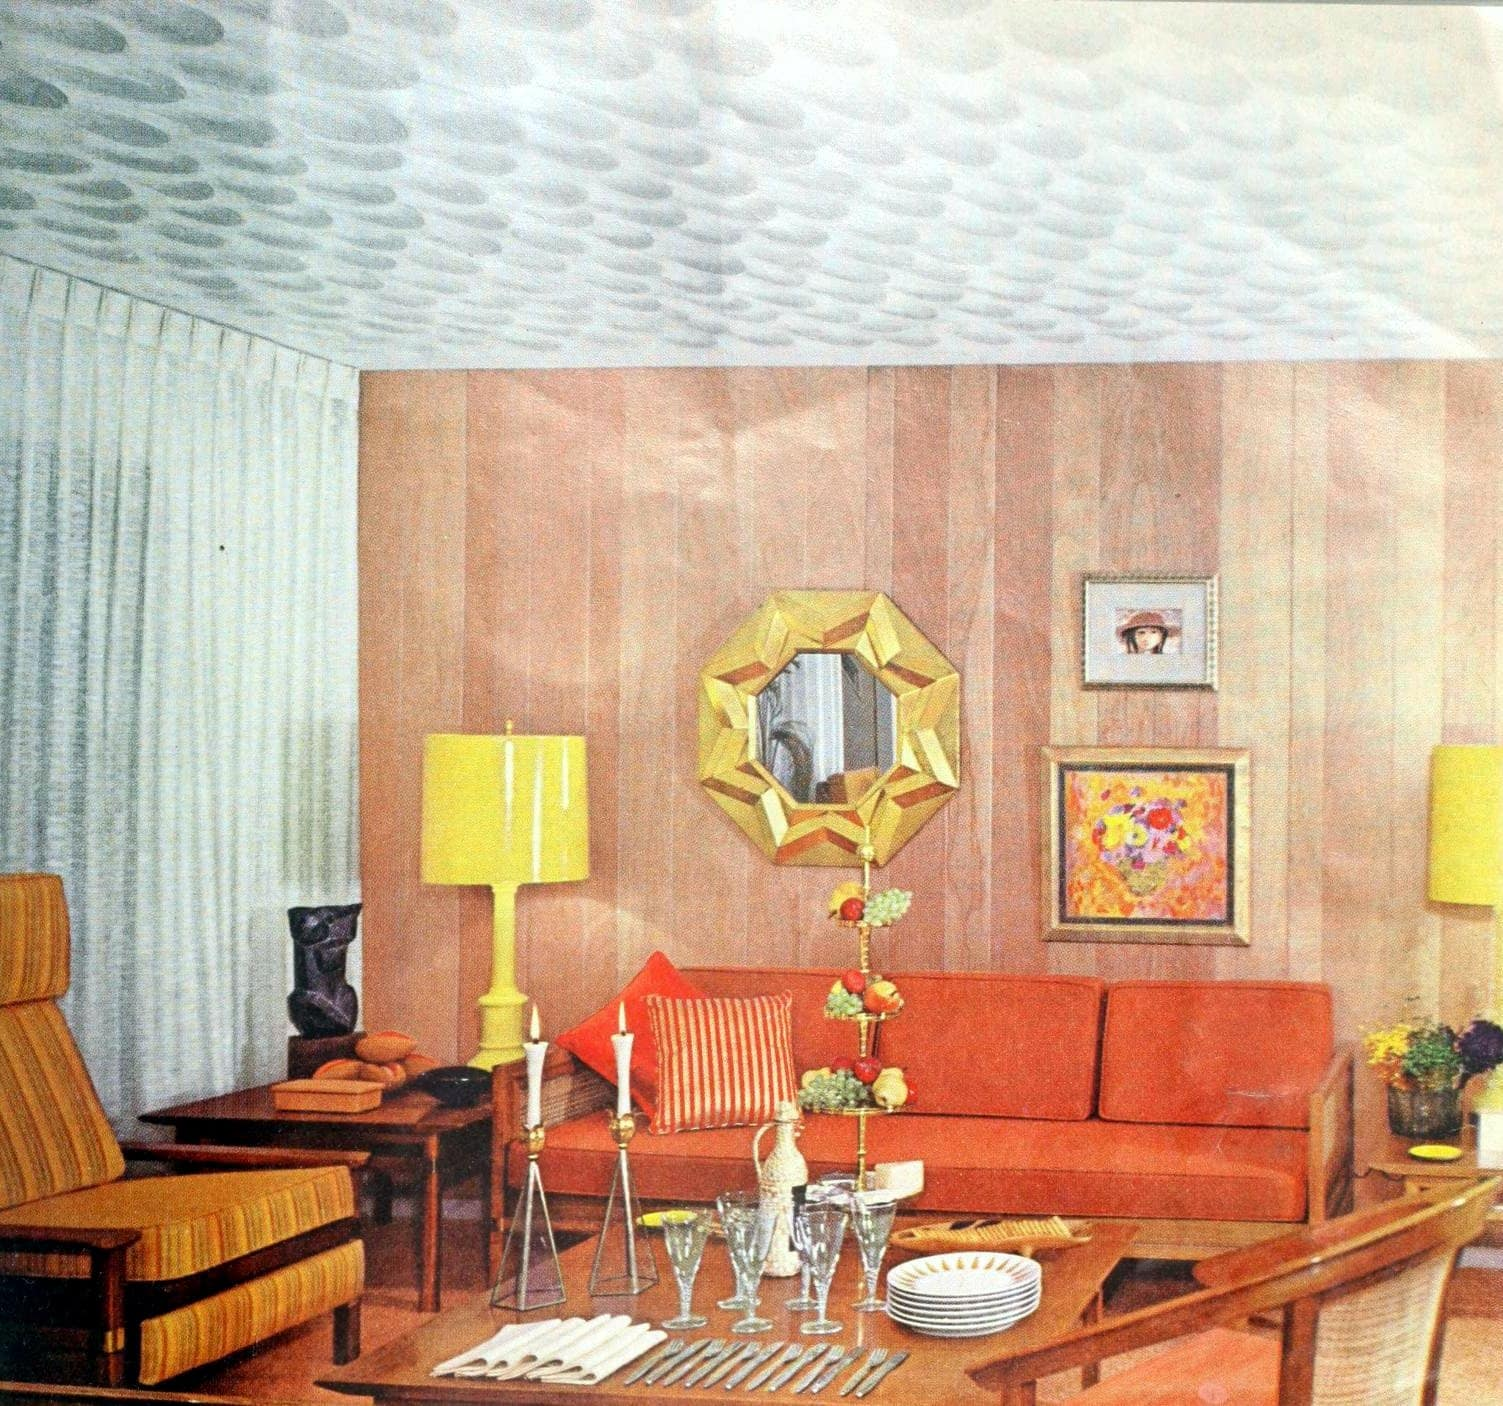 Simple retro 1960s living room decor with unique patterned ceiling